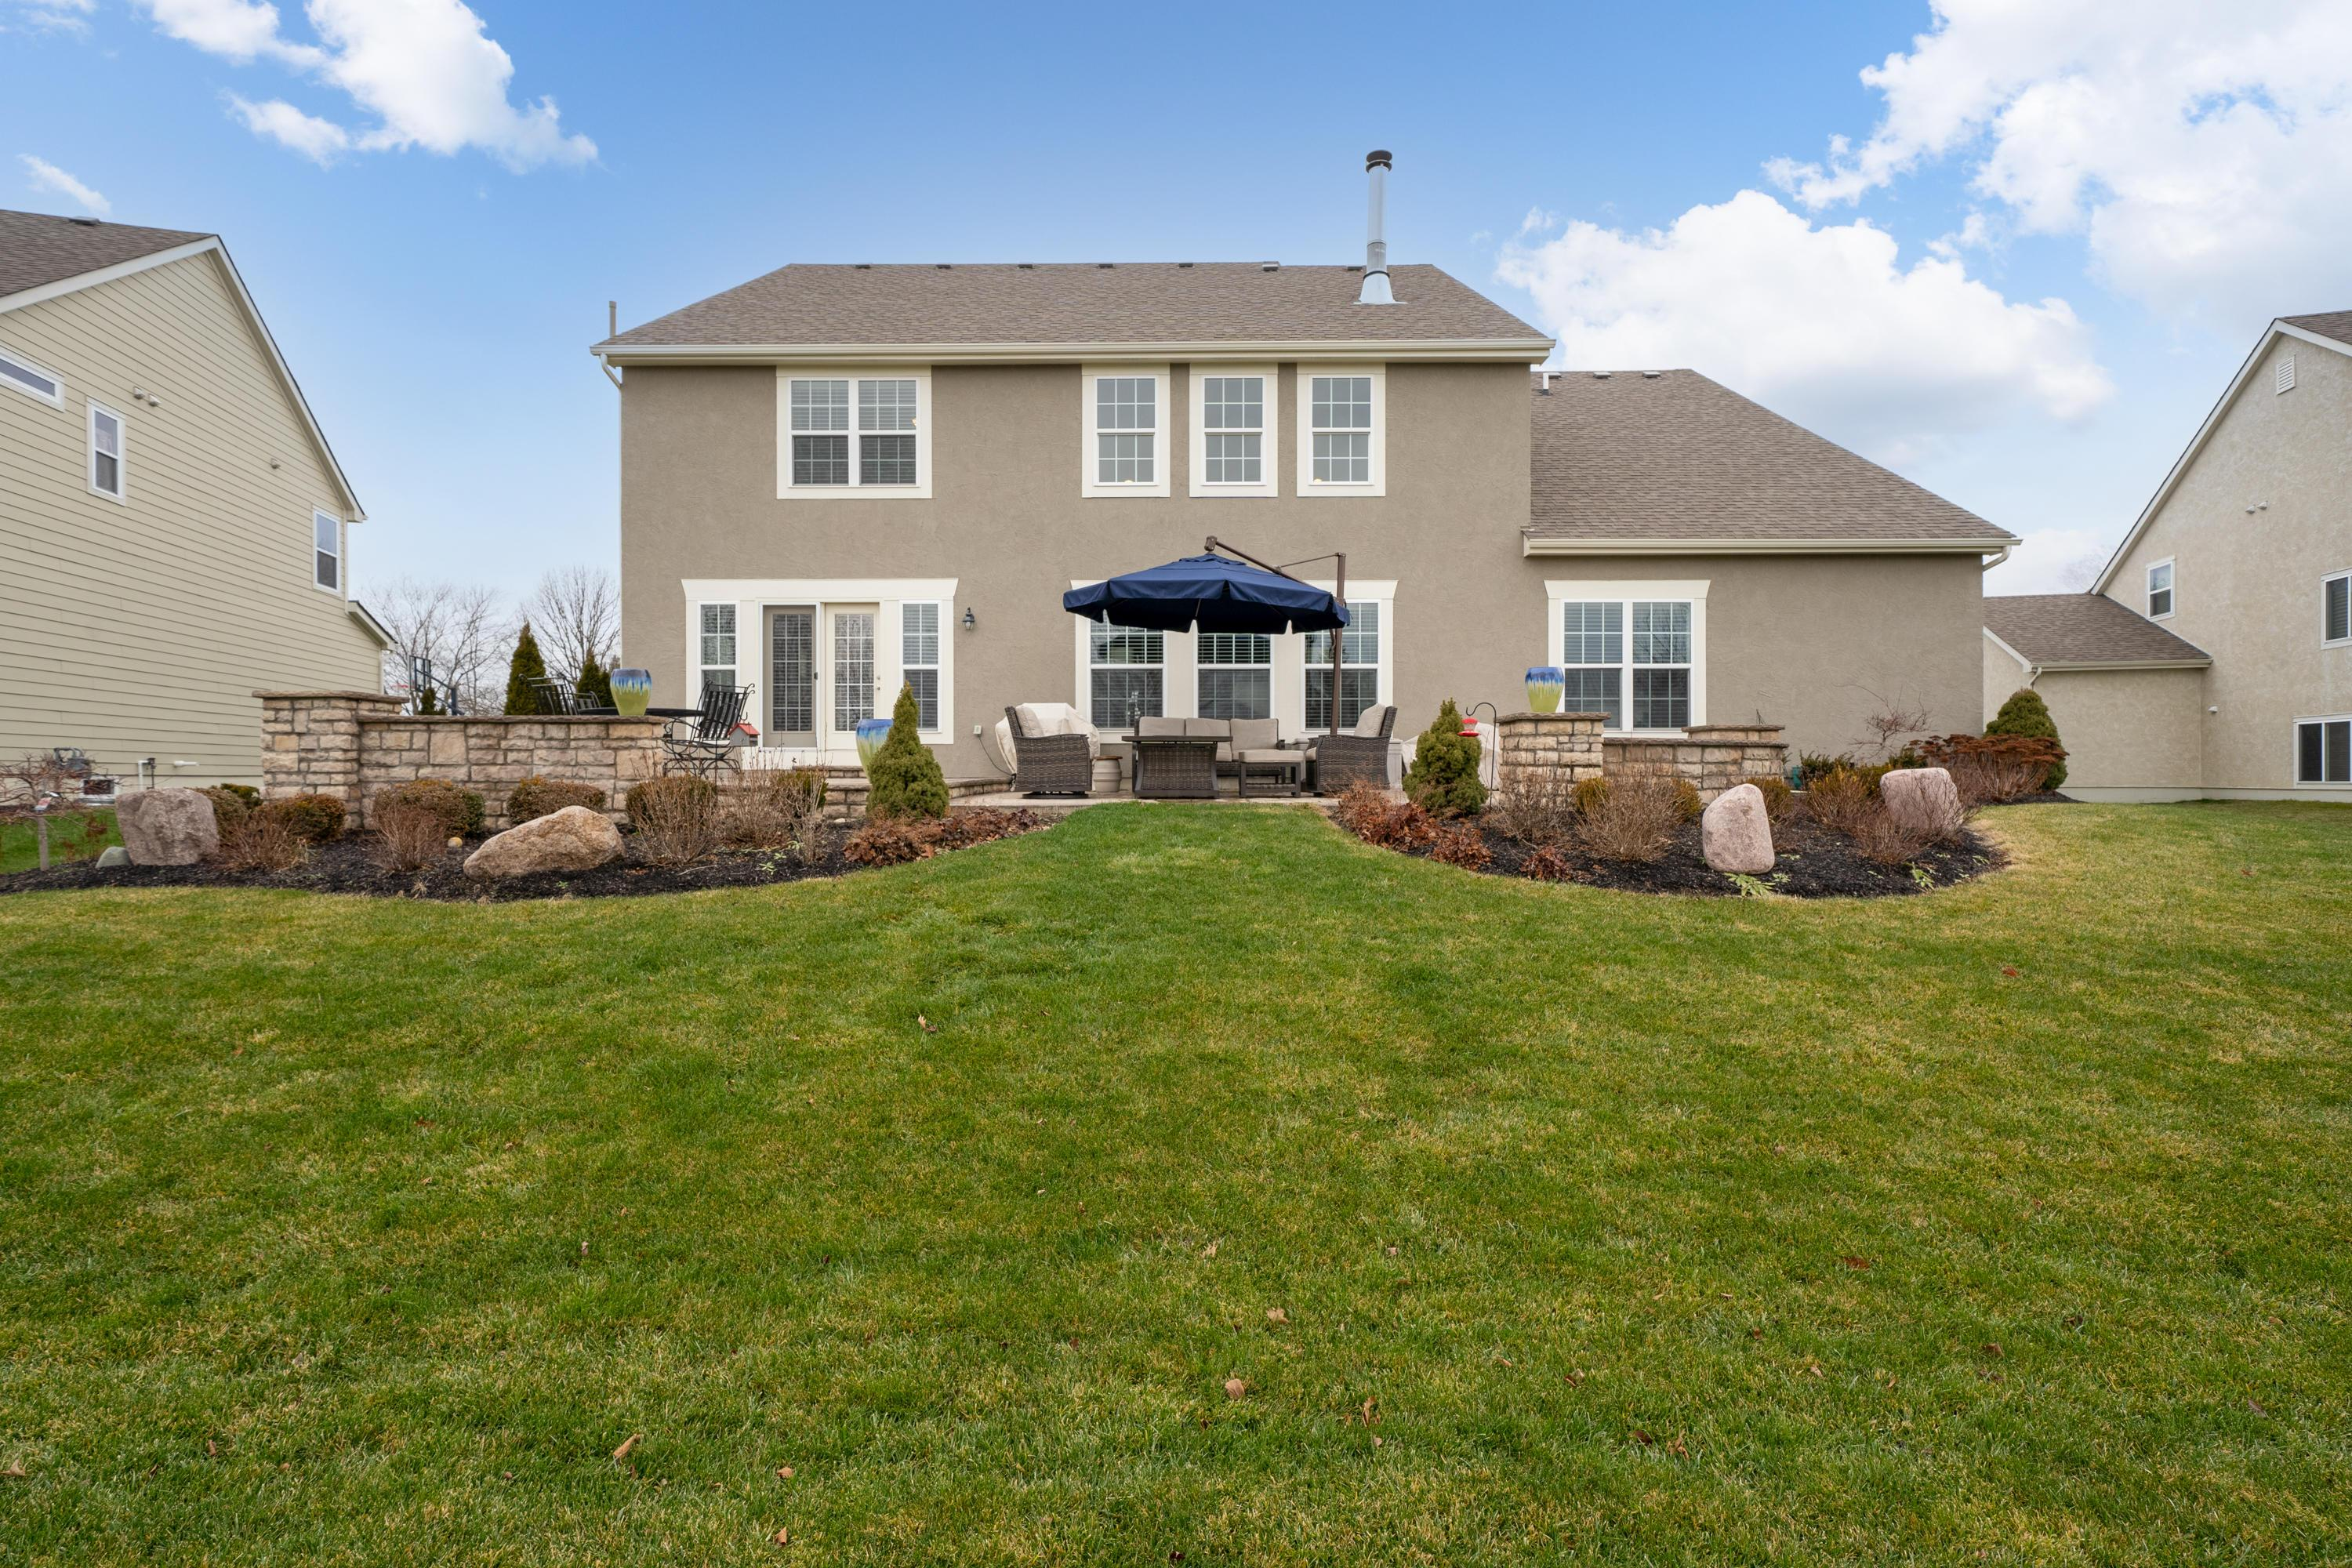 4077 Hickory Rock Drive, Powell, Ohio 43065, 5 Bedrooms Bedrooms, ,5 BathroomsBathrooms,Residential,For Sale,Hickory Rock,221000702